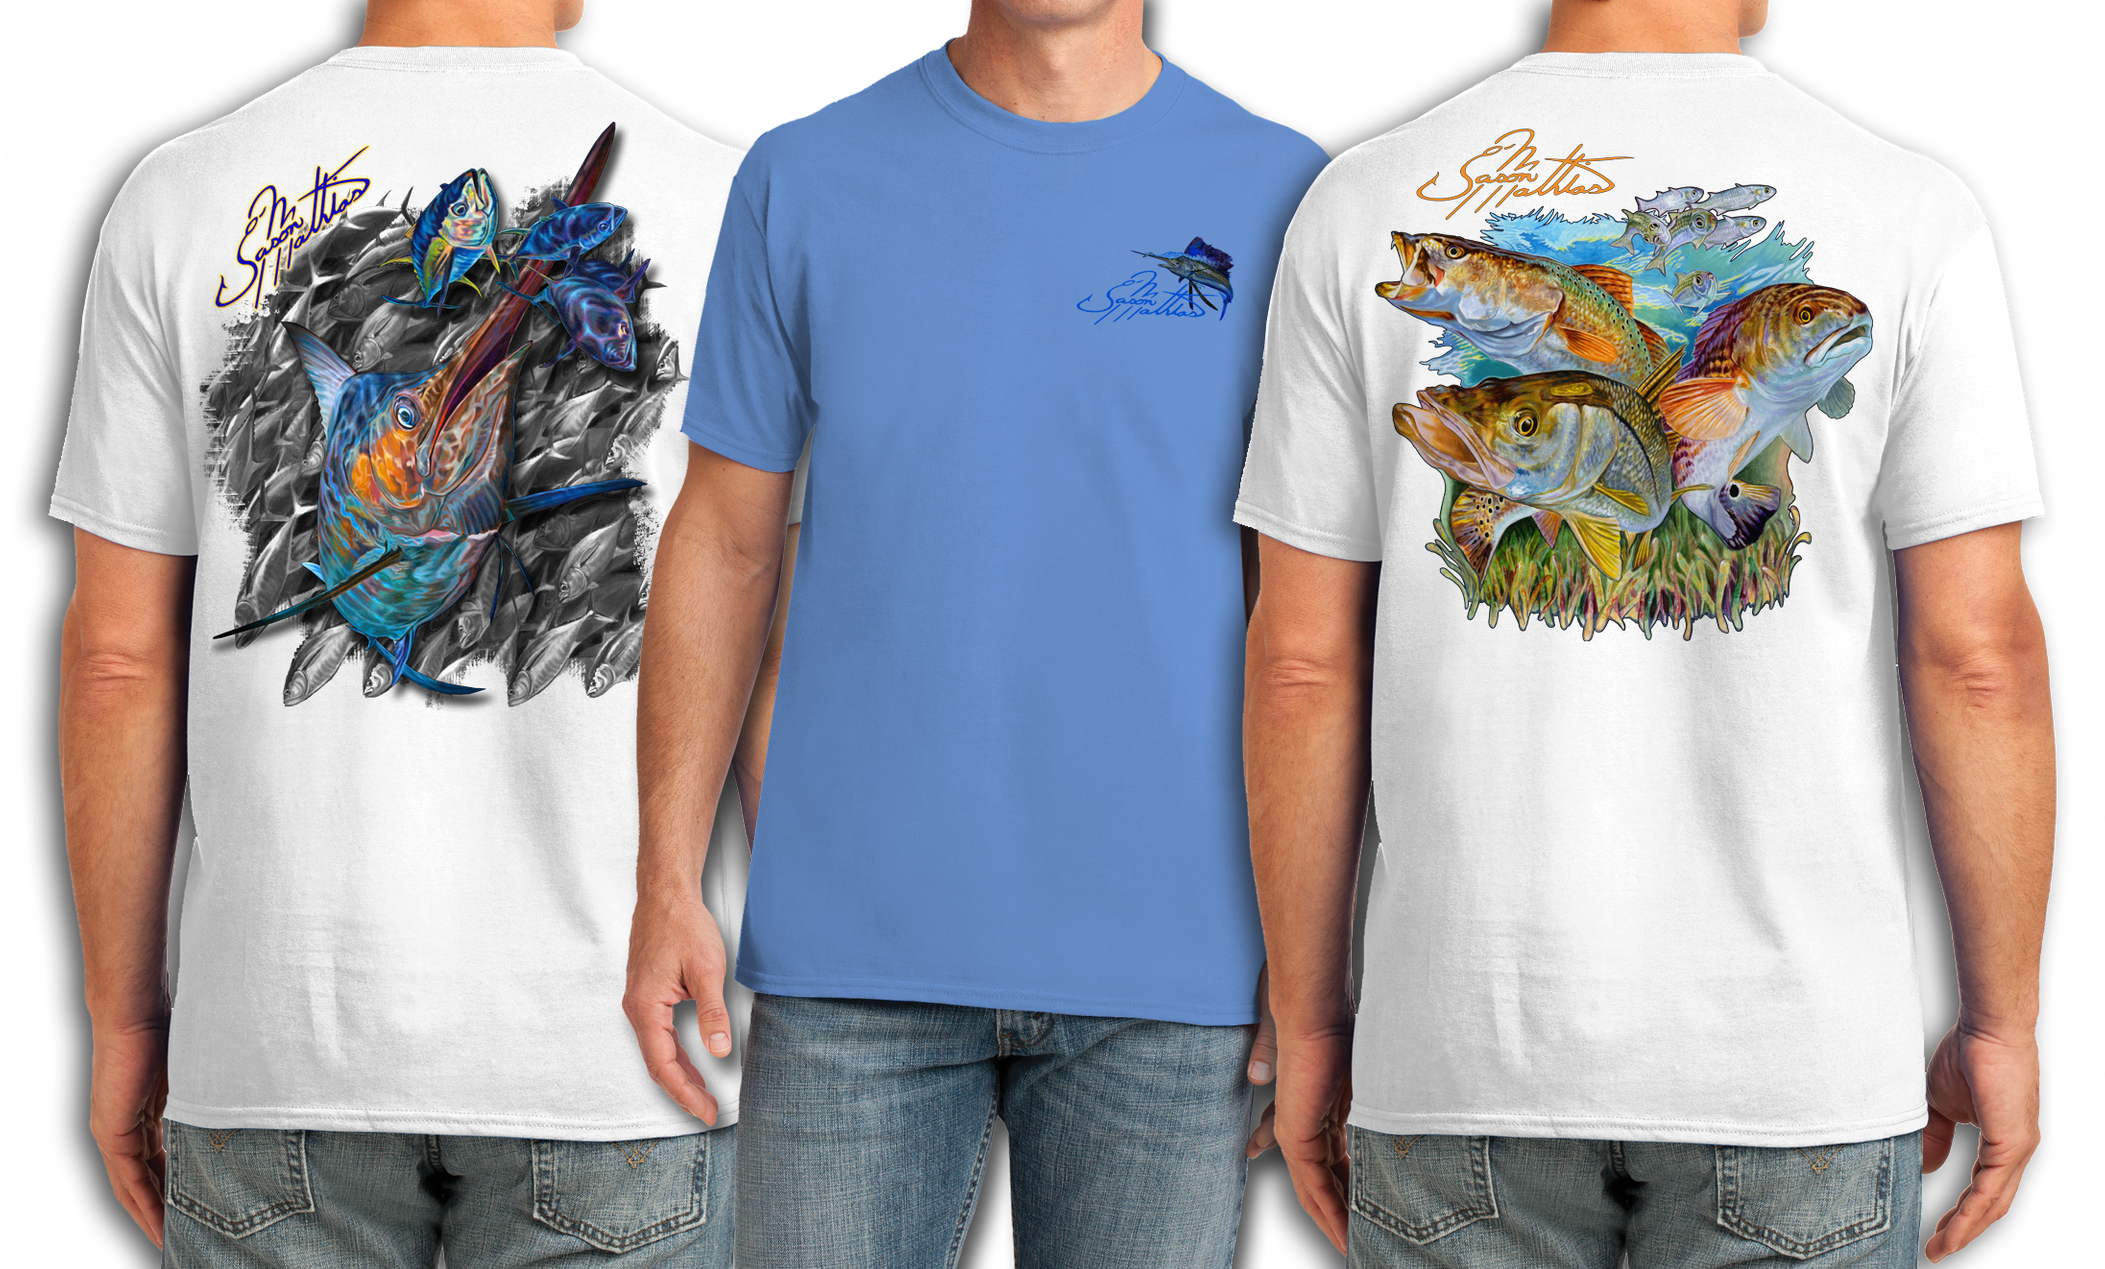 cotton-feel-t-shirts-short-sleeve-fishing-shirts-apparel-gear-jason-mathias-art-sailfish-blue-marlin.png